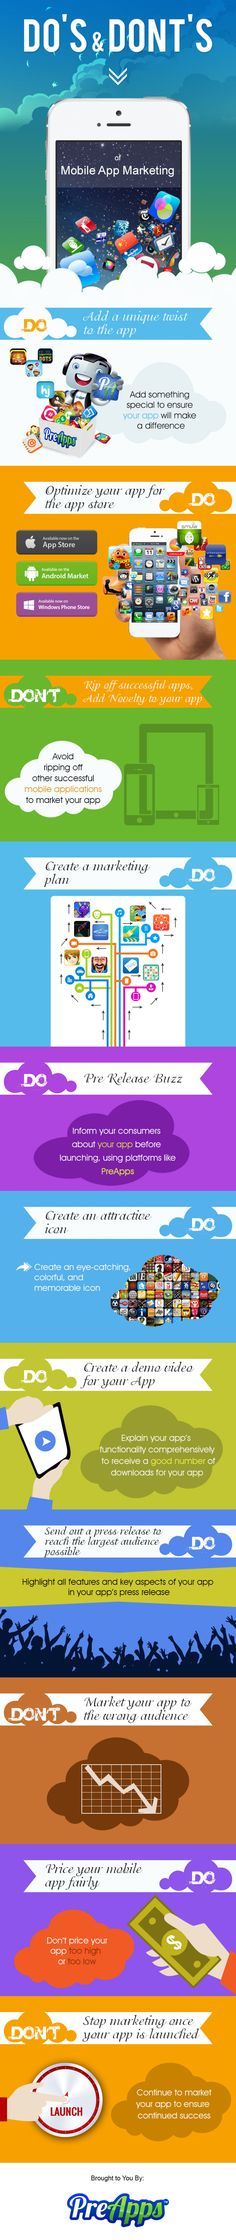 Do's & Dont's of #Mobile #App #Marketing